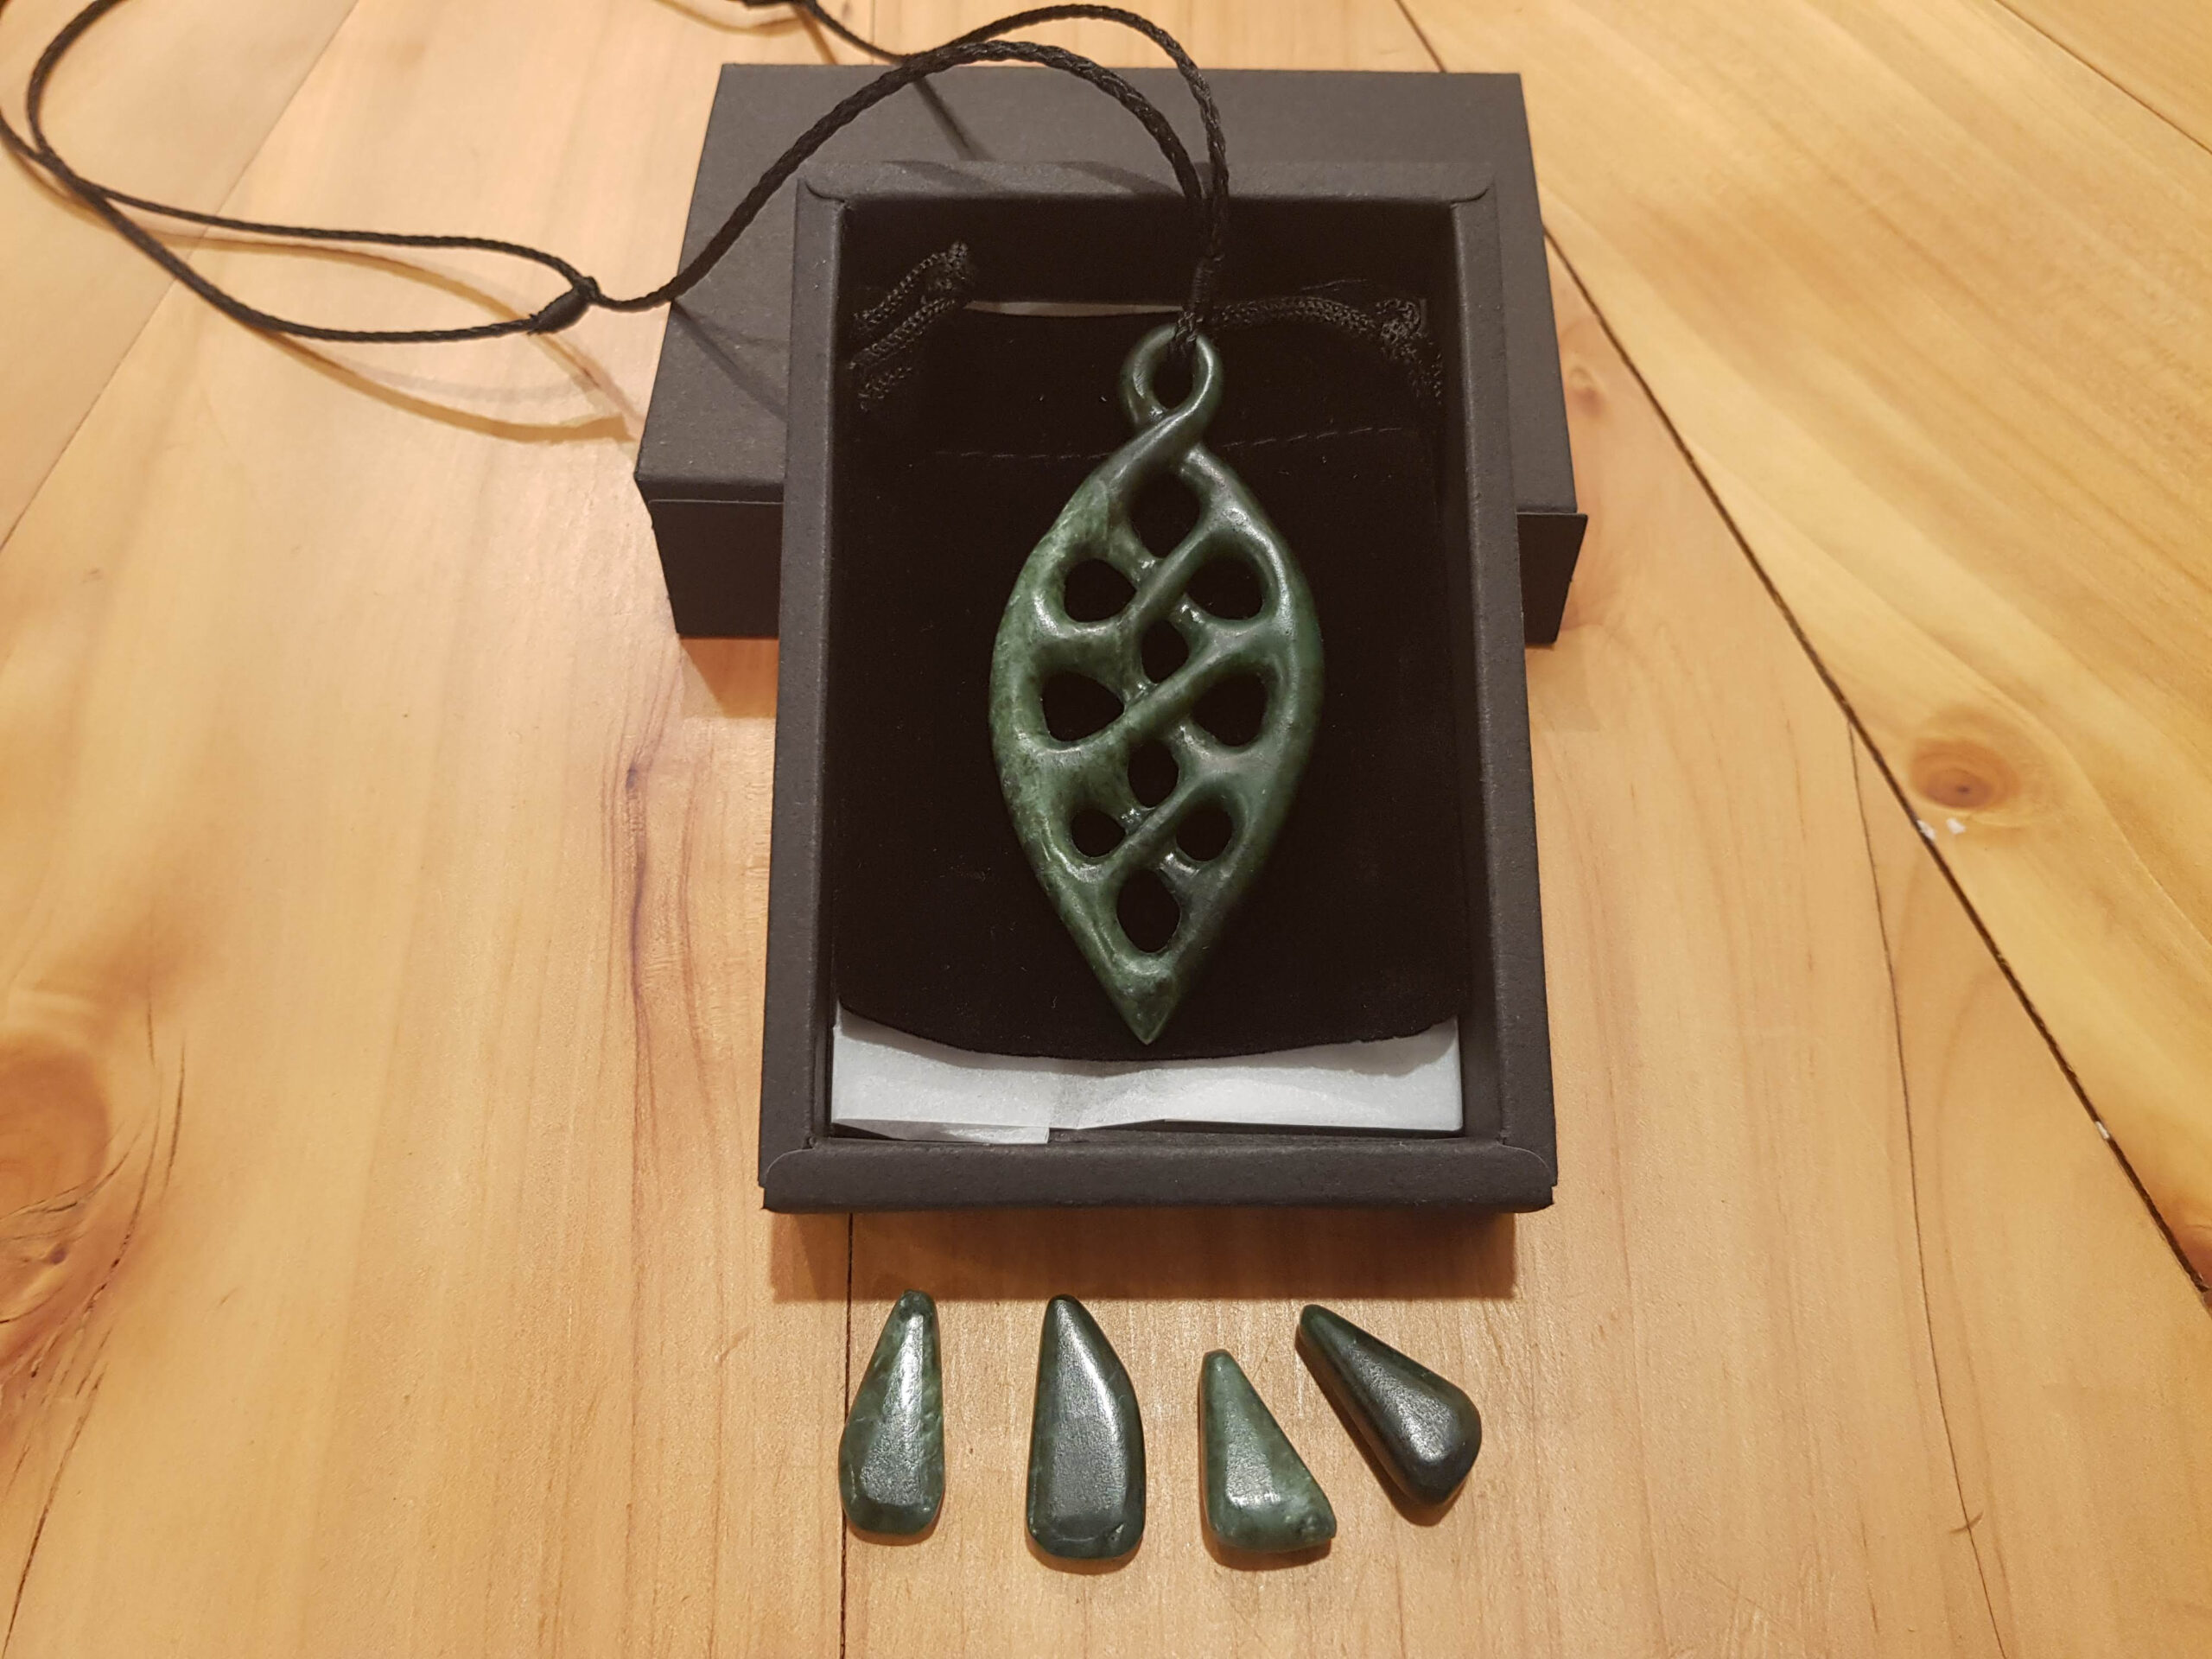 pounamu, whanaungatanga, carving, pendant, greenstone, jade, lashing, maori, new zealand, nz, campbell potter, jewellery, jewelry, stone, Whanau,connections, family (11)